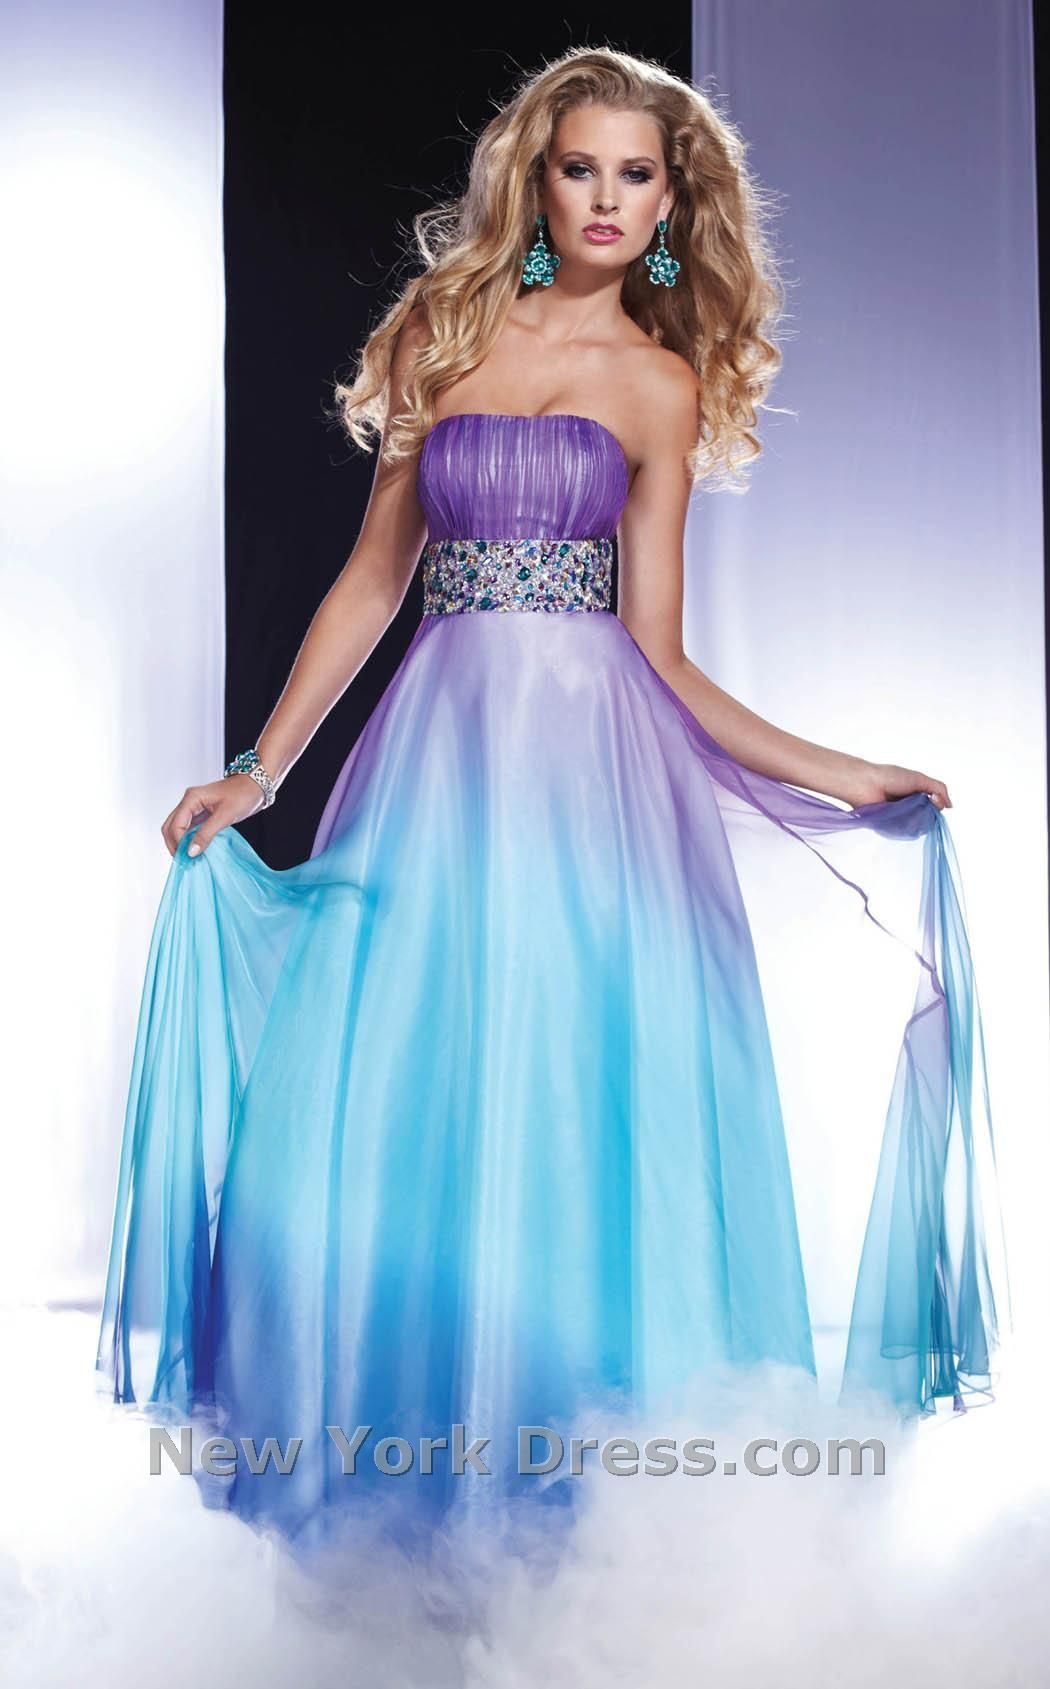 Wonderful Prom Dress Purple Ideas - Wedding Ideas - memiocall.com